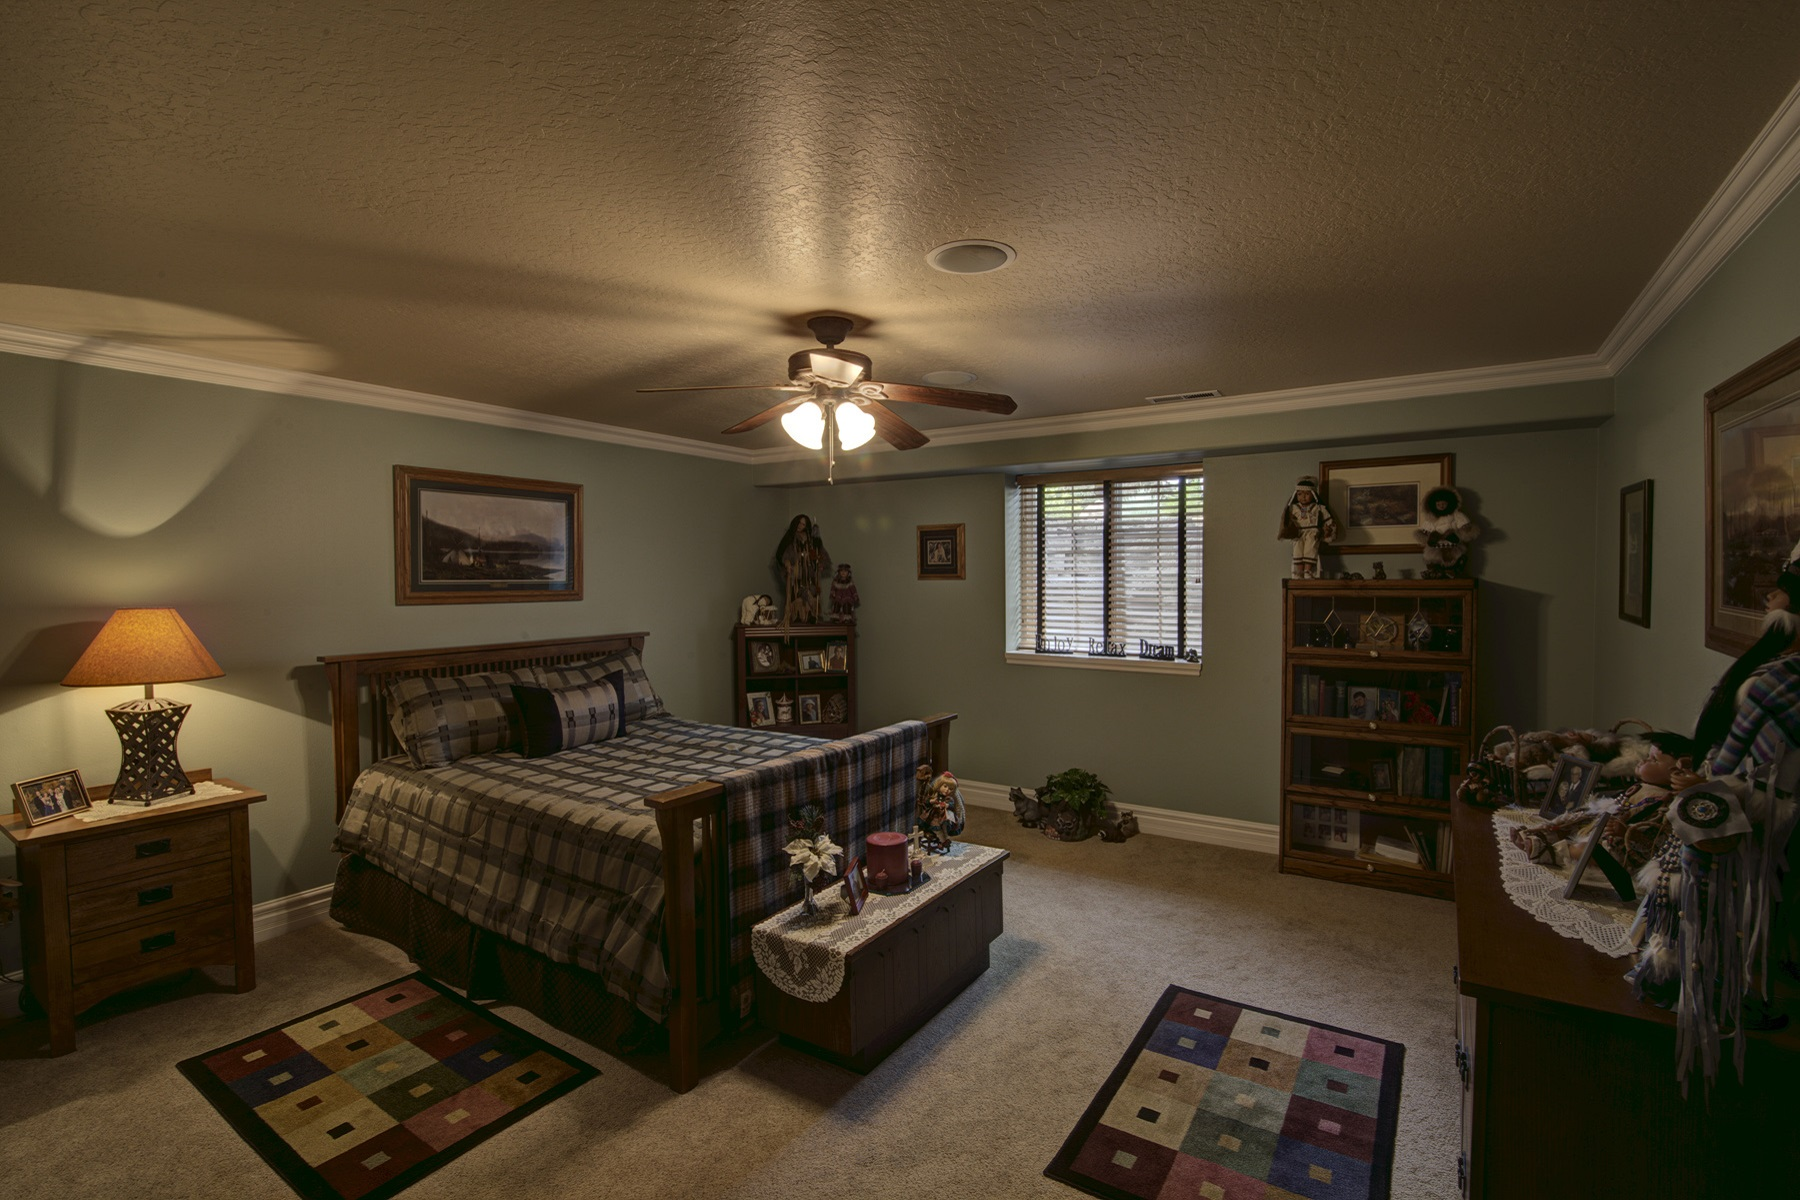 Additional photo for property listing at 6025 Marias St 6025  Marias Street Missoula, Montana 59803 United States